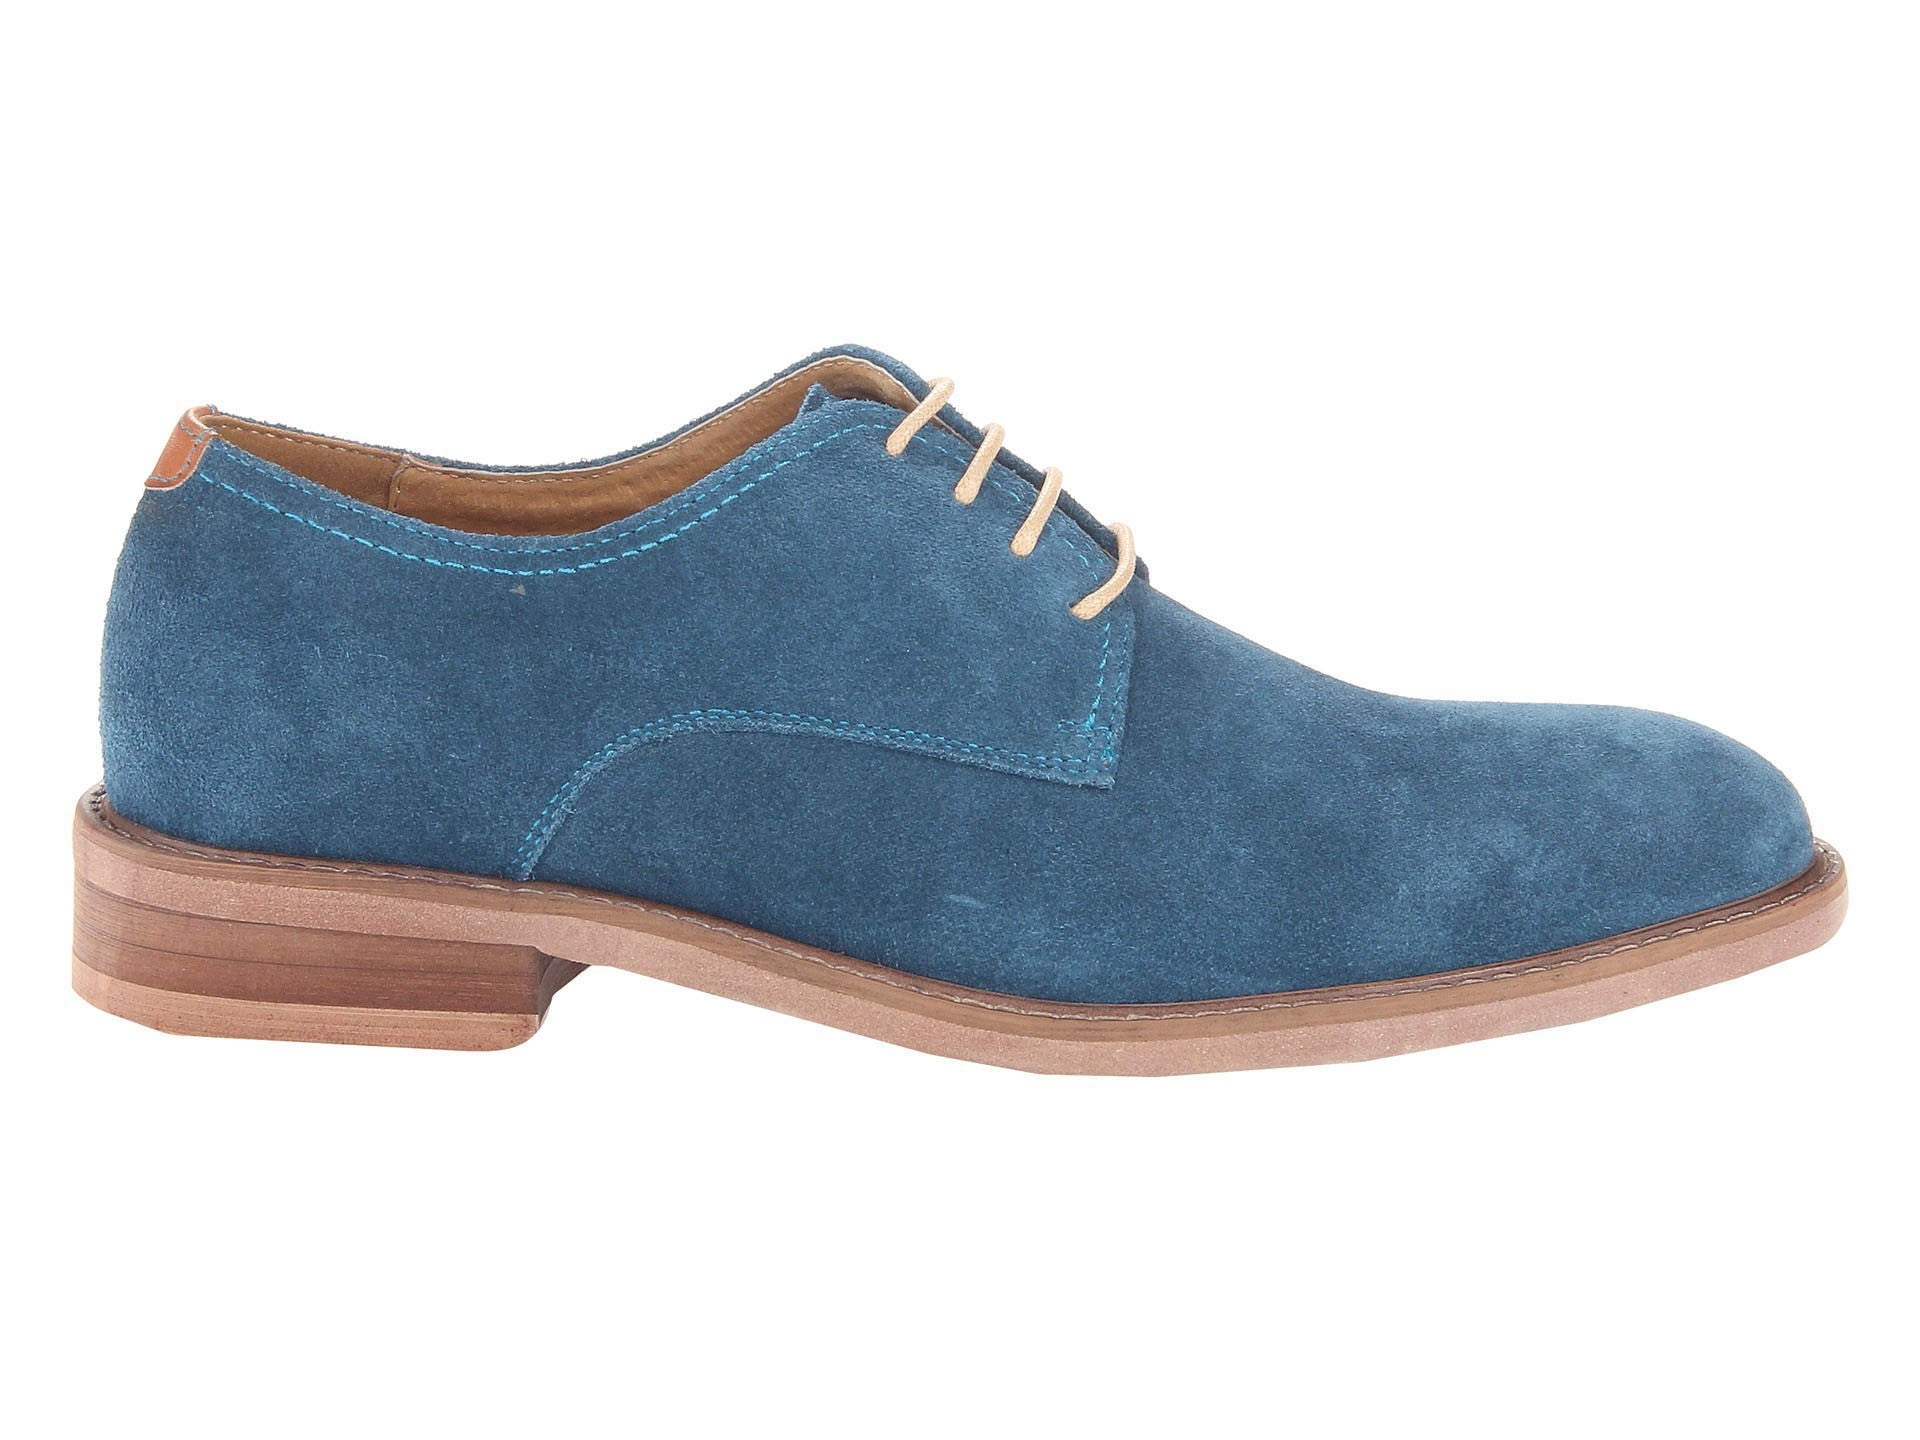 Rossco Suede Oxford